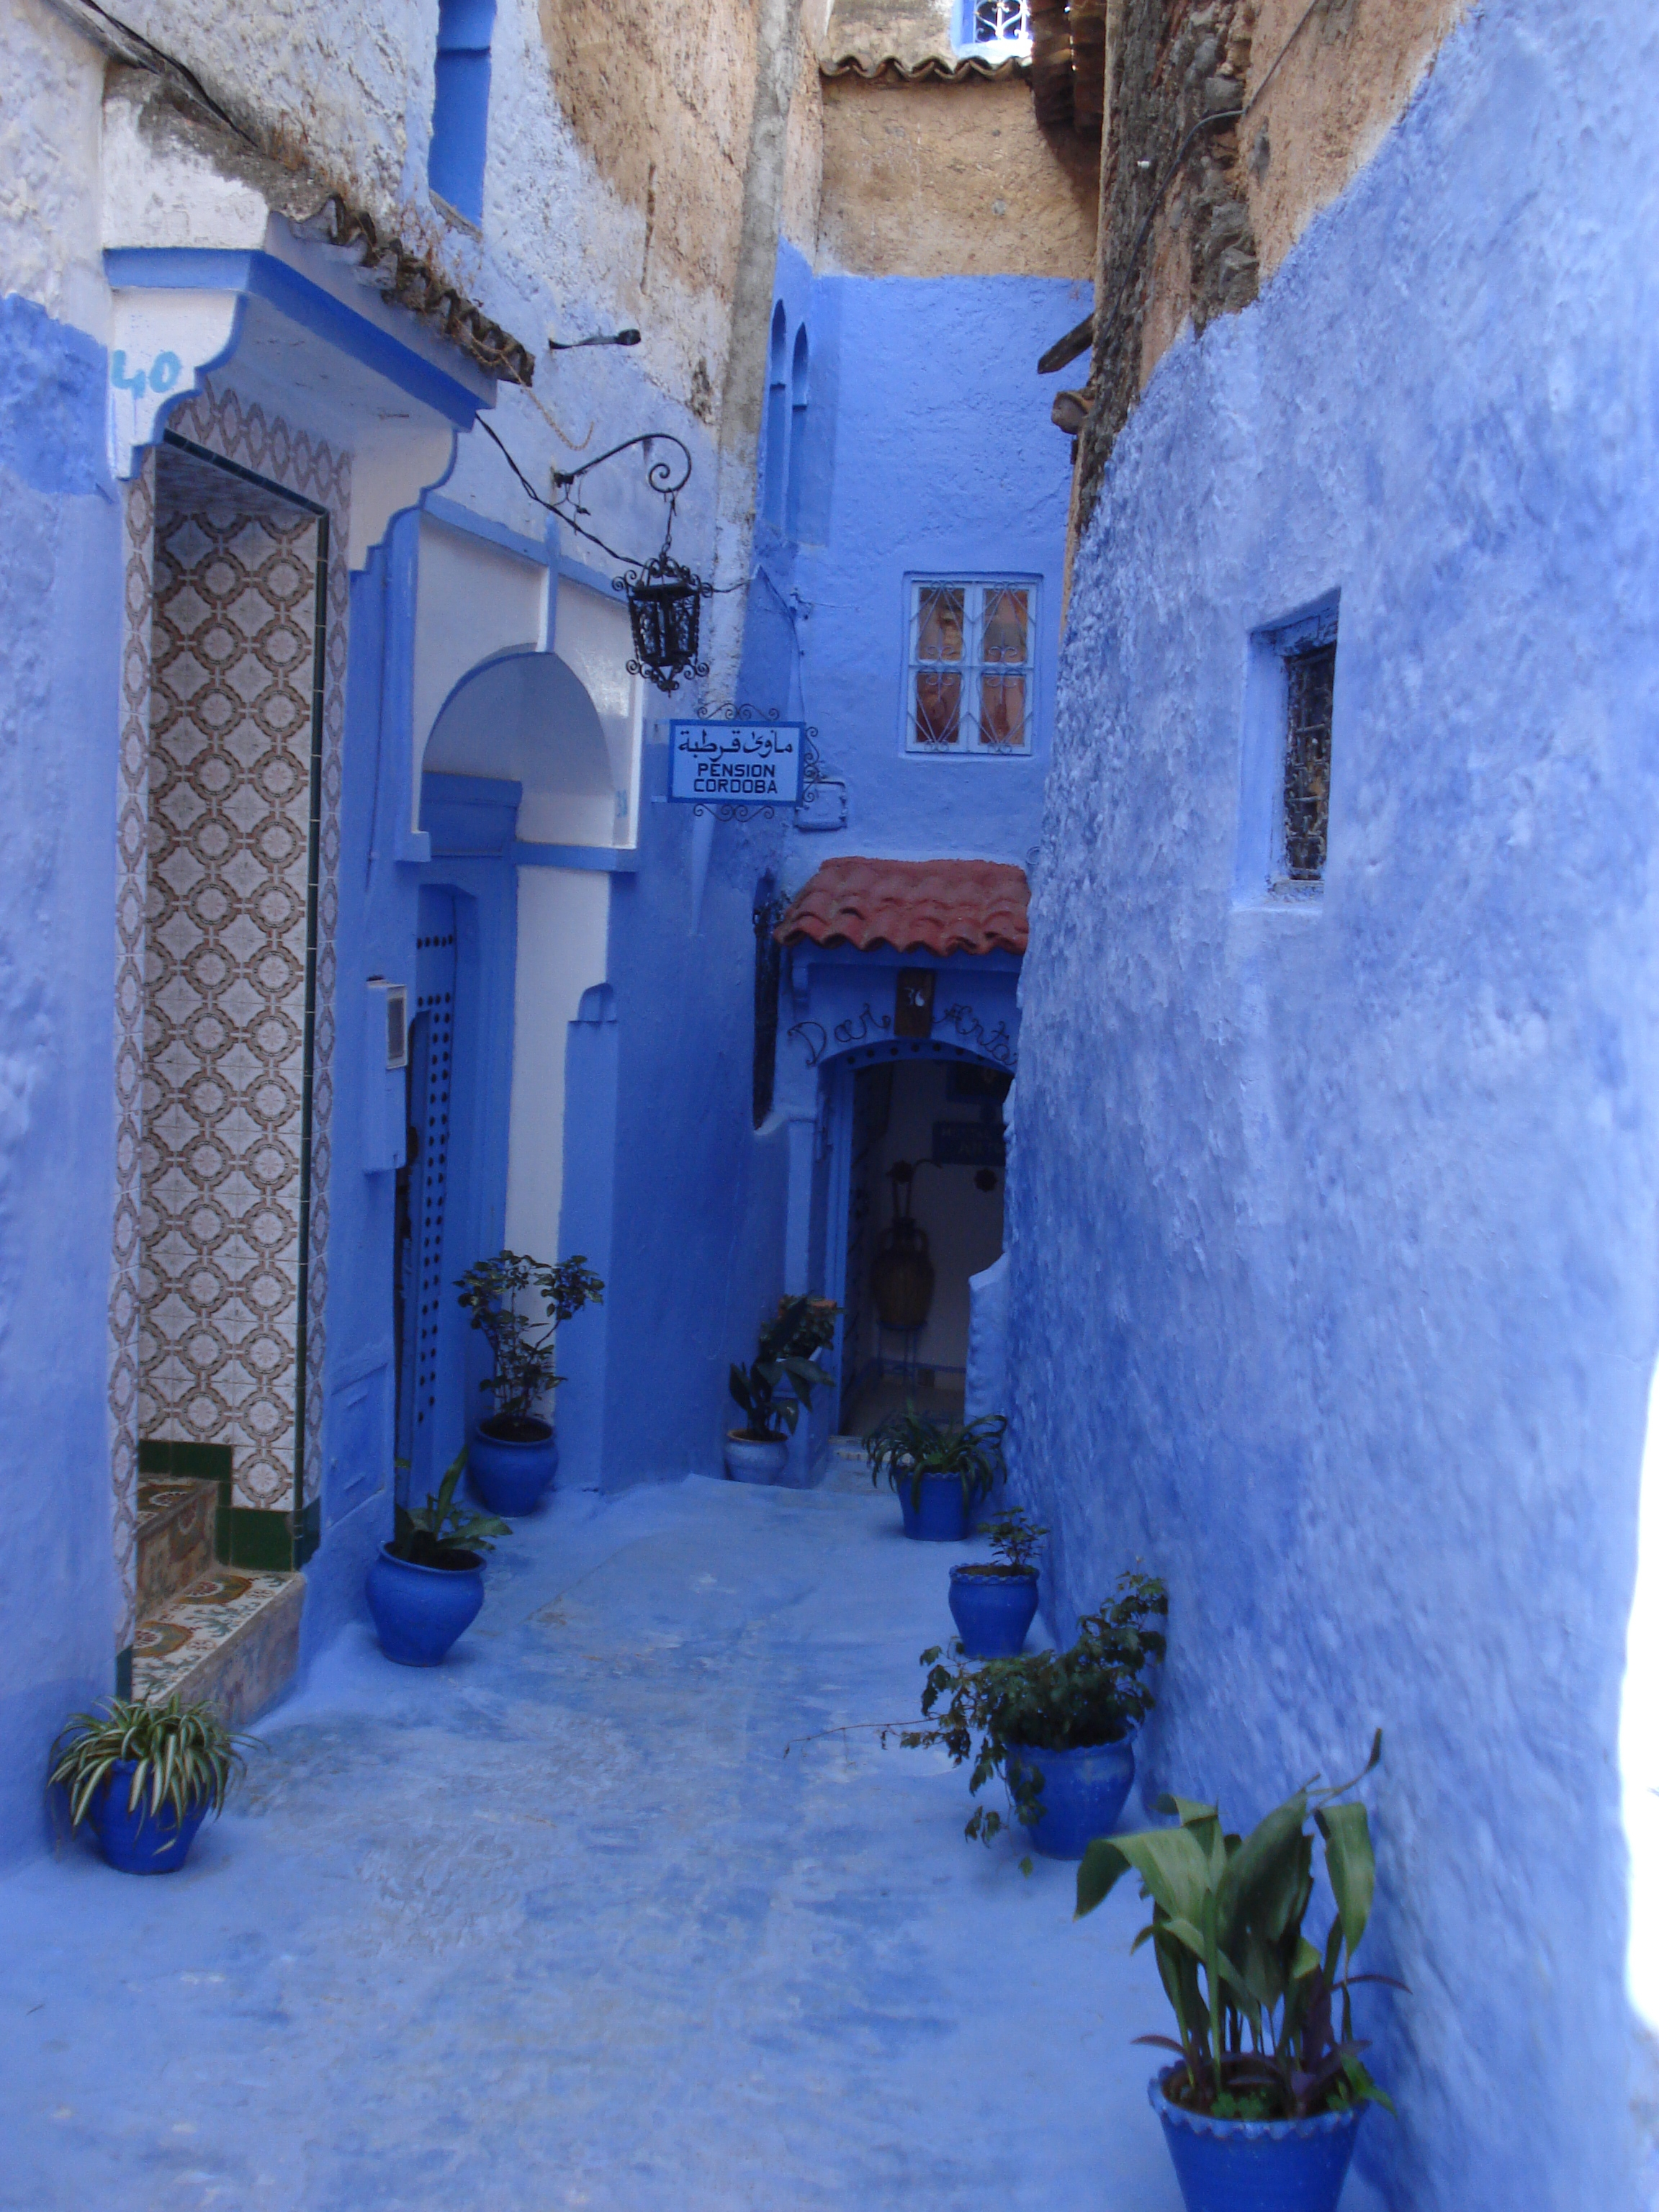 Chefchaouen Morocco  City pictures : Chefchaouen Morocco